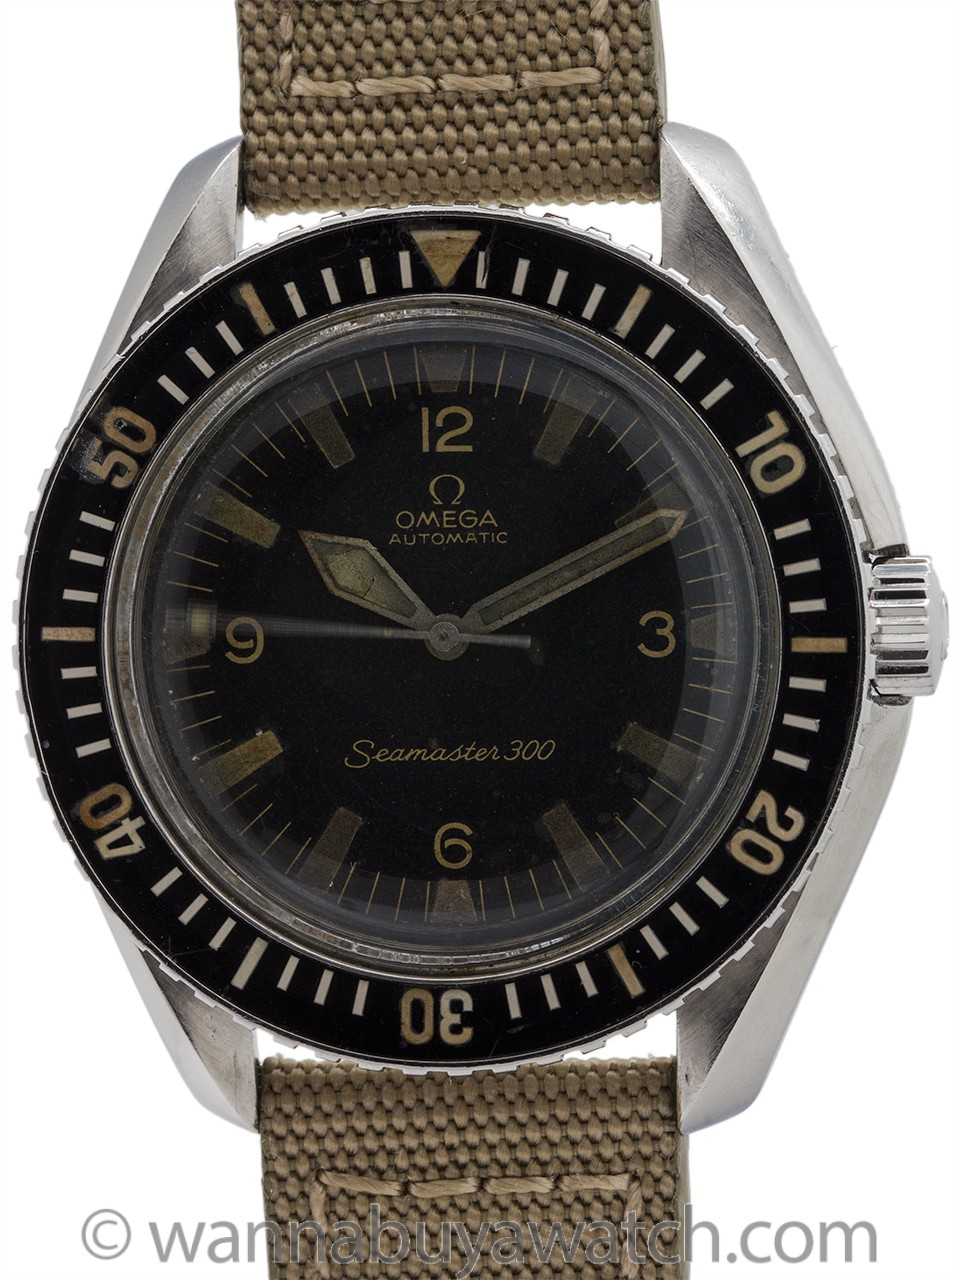 Omega Seamaster 300 ref 166.024 Stainless Steel circa 1966